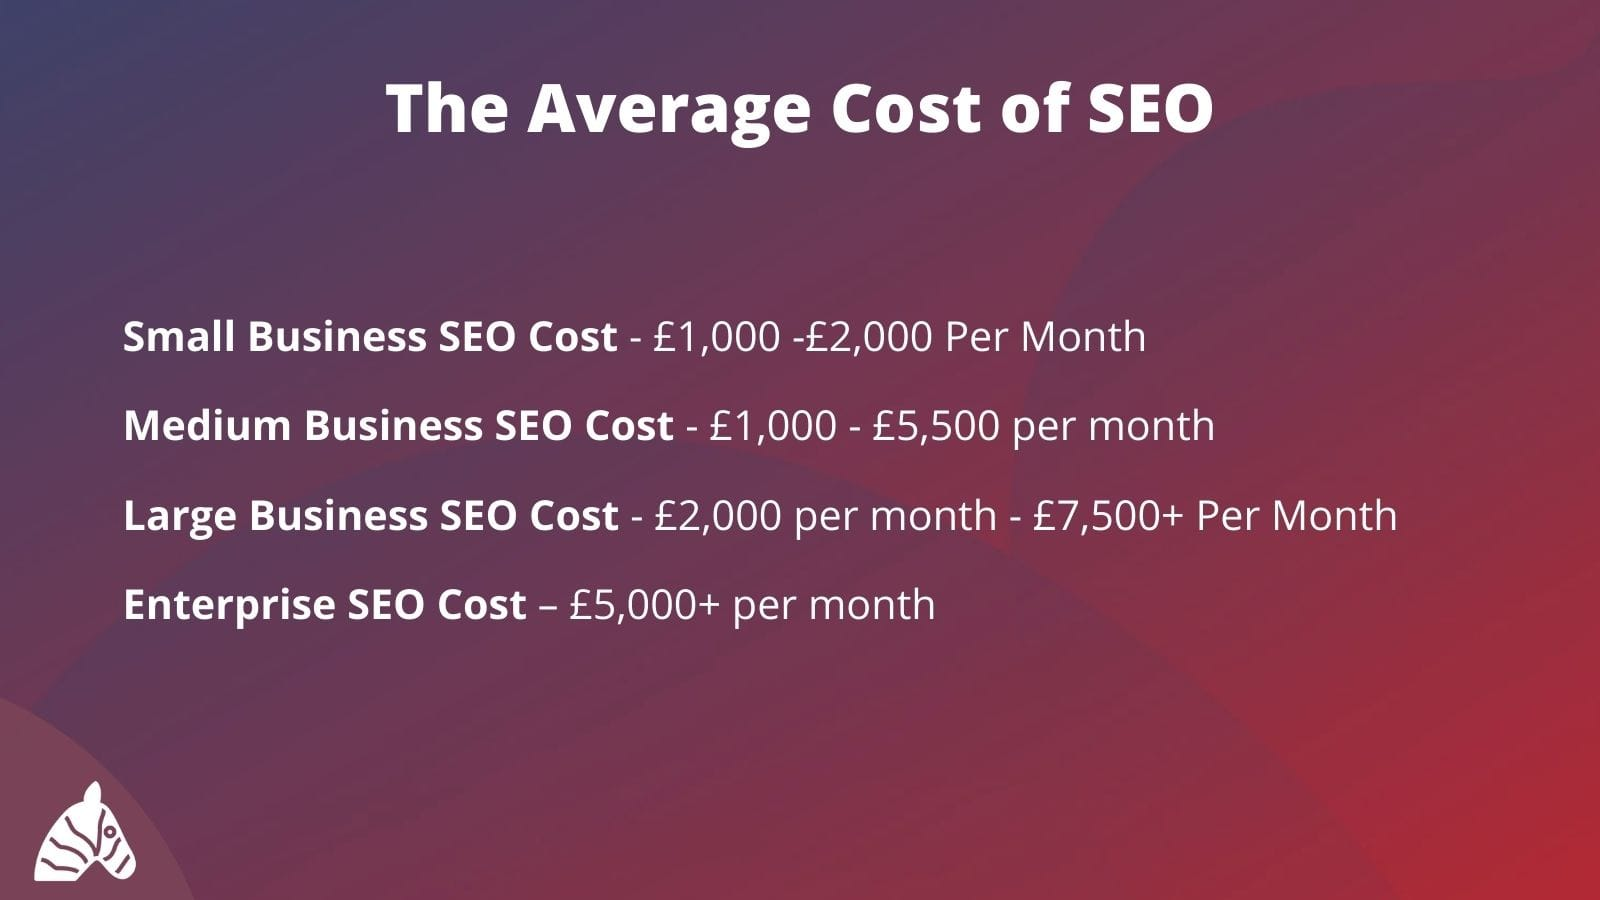 the average cost of SEO services